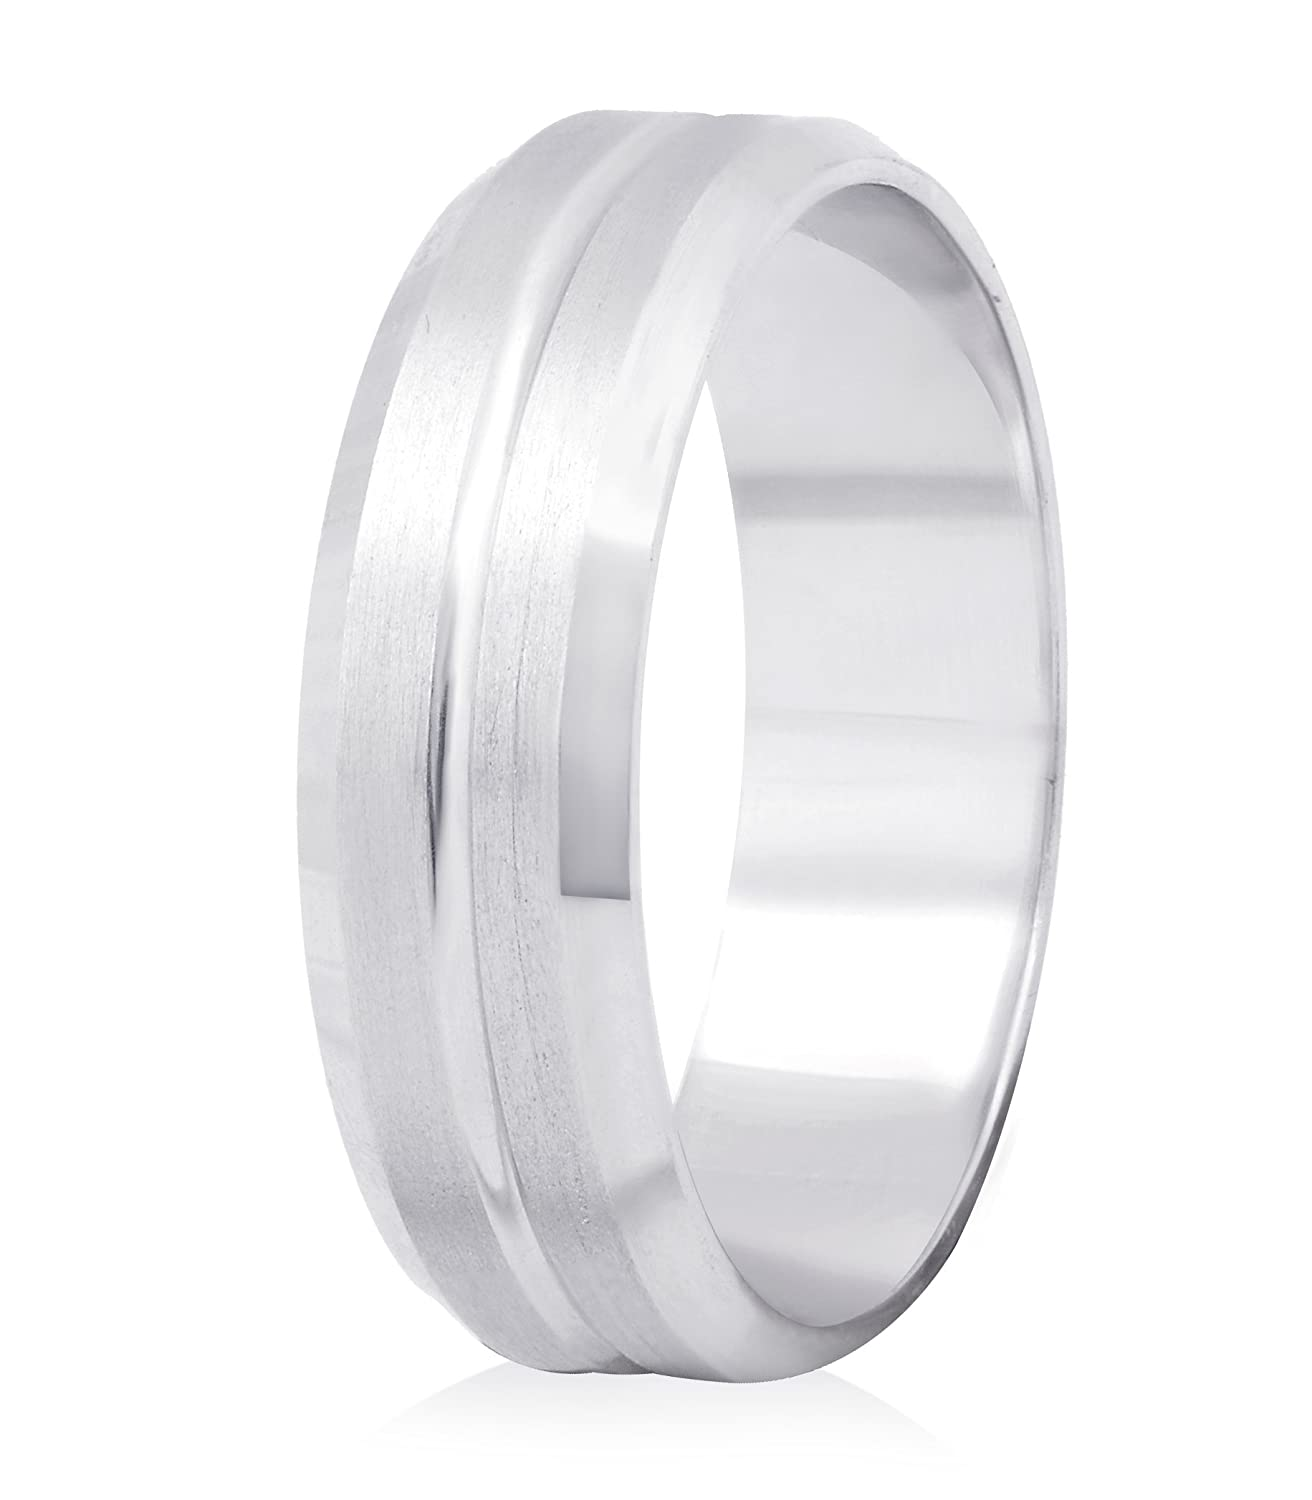 14K White Gold 6mm Satin-finished Grooved Wedding Band